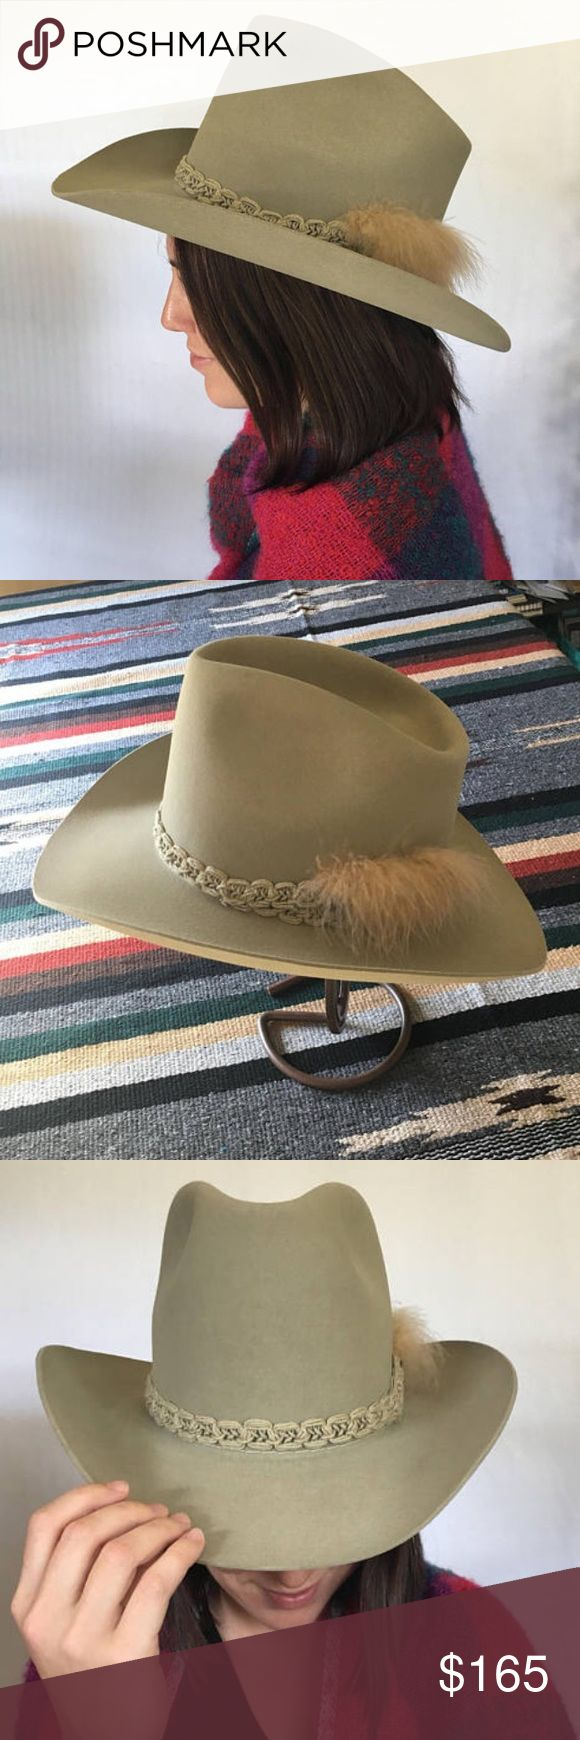 Vintage Resistol Cowboy Hat w/ Feathered Hat Band This great vintage Resistol Cowboy Hat is marked as 7 1/8 size and comes with original Resistol Hatbox.  Tan/khaki beaver hat (photos not filtered, color appears different in natural and interior lighting).  Hat band includes emu feather. It is in good vintage condition with two faint marks and 1 small divit in less noticeable areas. The body of the hat is taller which flatters a smaller statured person and adds appearance of height. The…